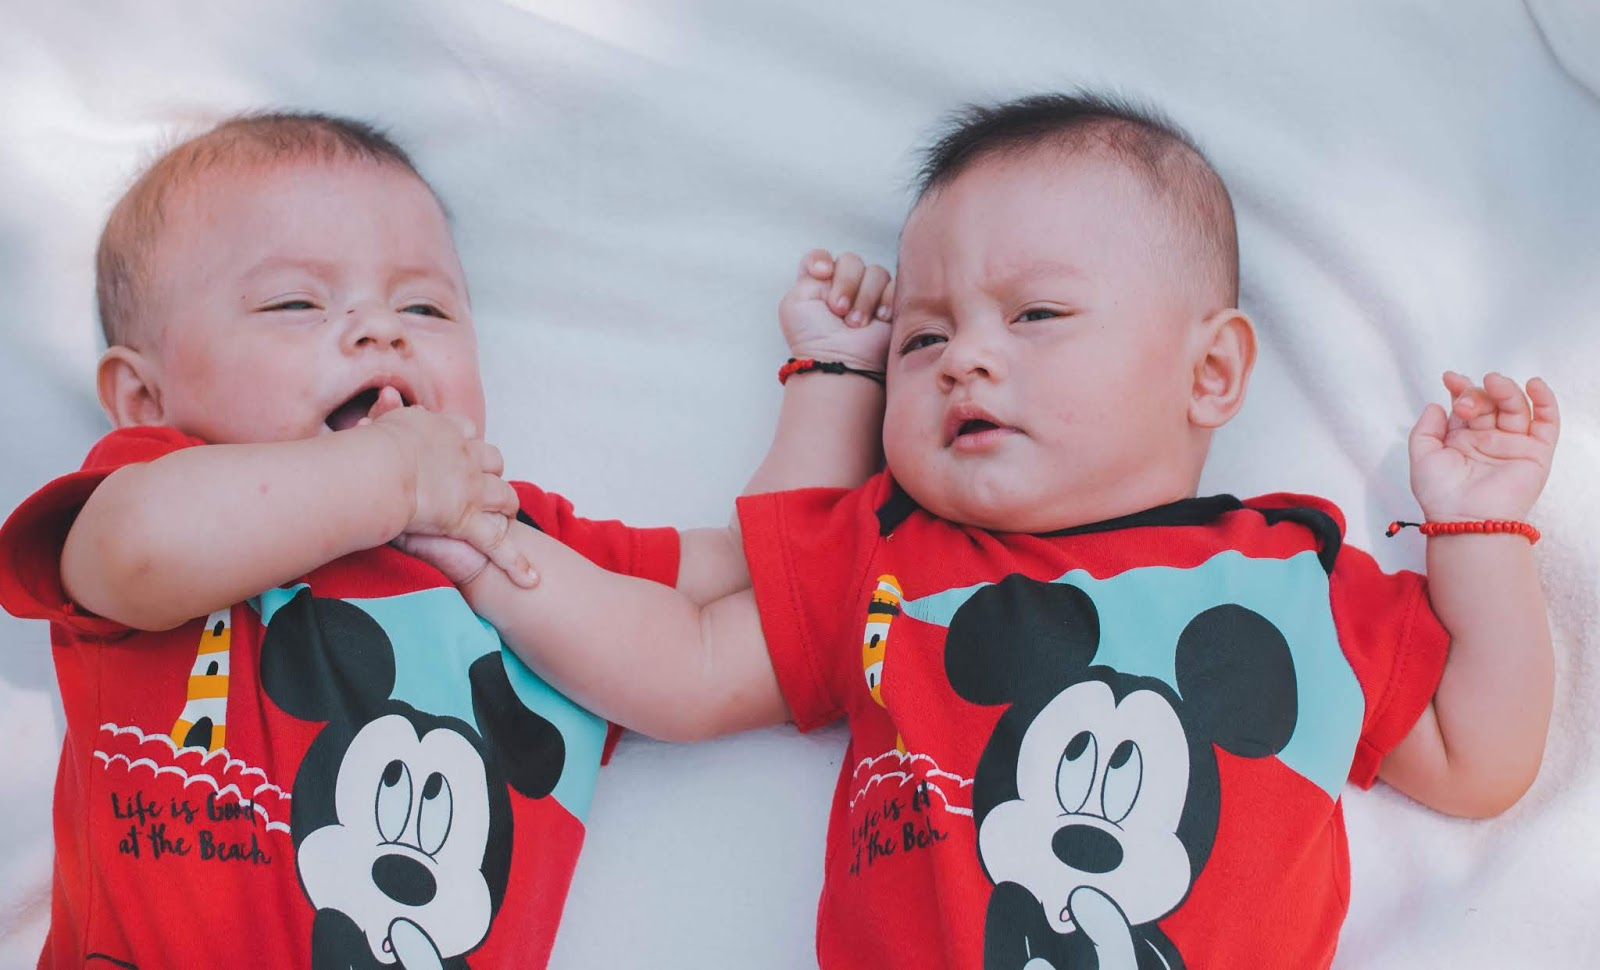 Home Of The Awesome Pictures Theawesomepic Com 188 Cute Babies Images In Hd Baby Images For Download Babies Images Hd Baby Pics To Download